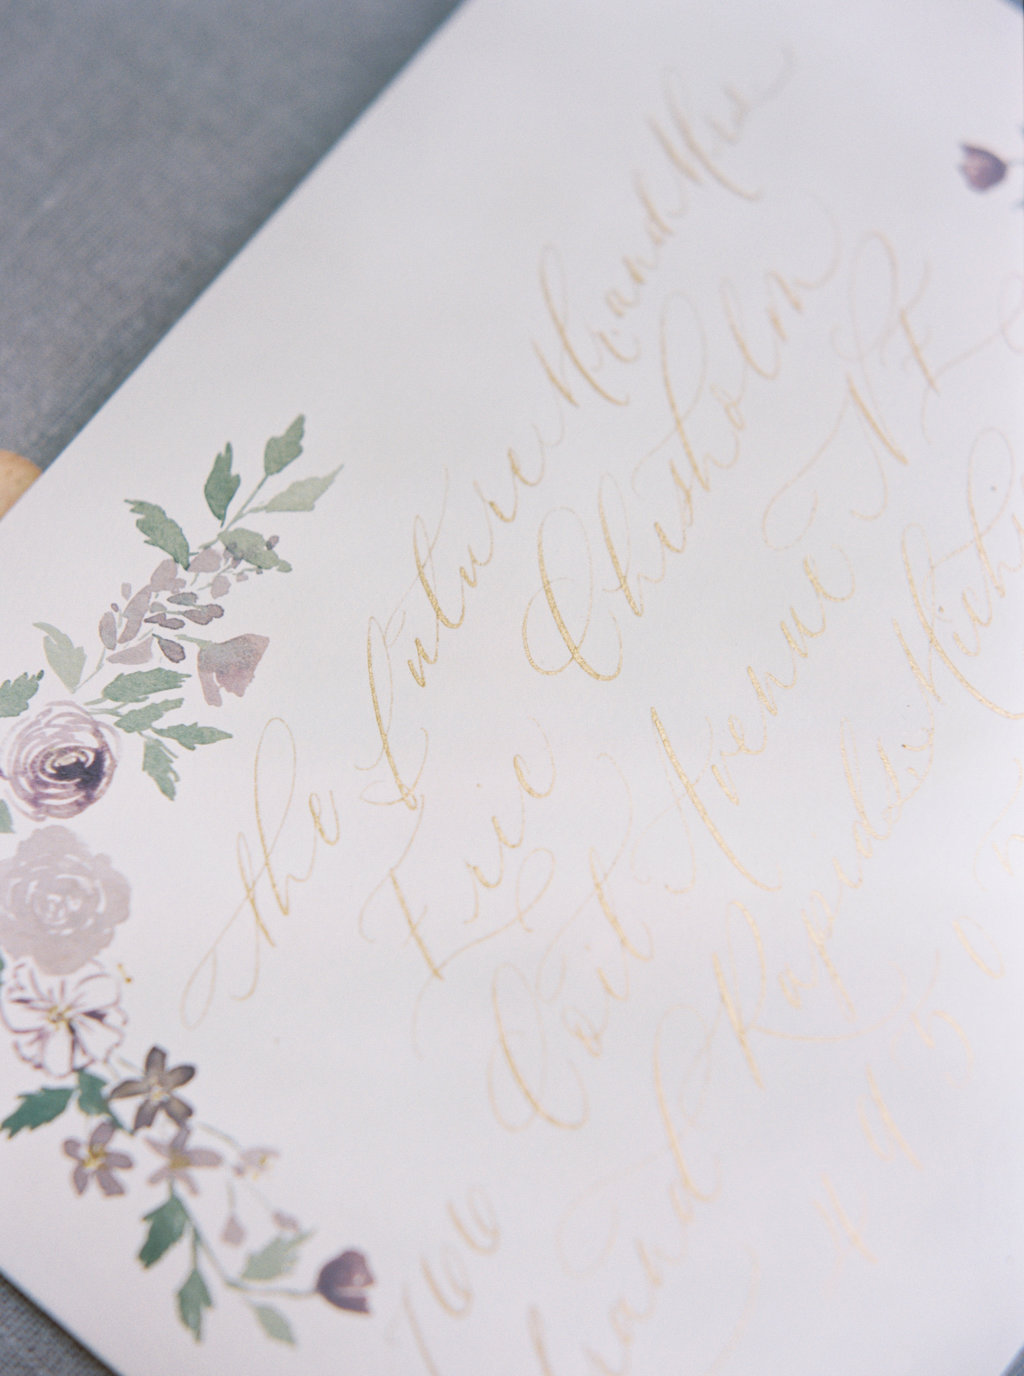 Gold calligraphy and watercolor flowers on wedding envelopes.